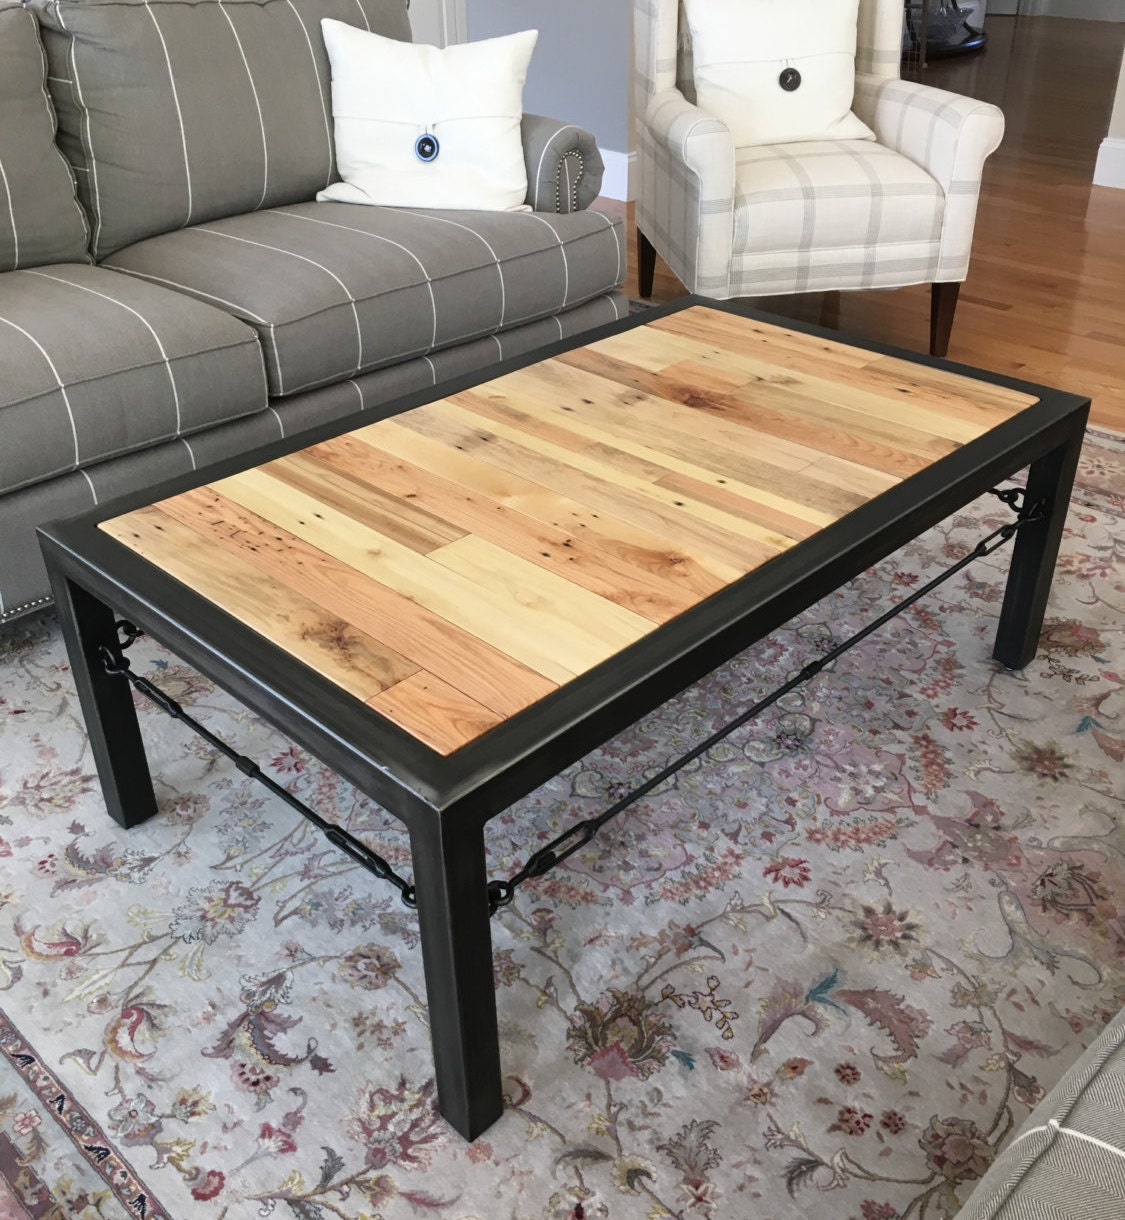 New Industrial Coffee Table Plans Free